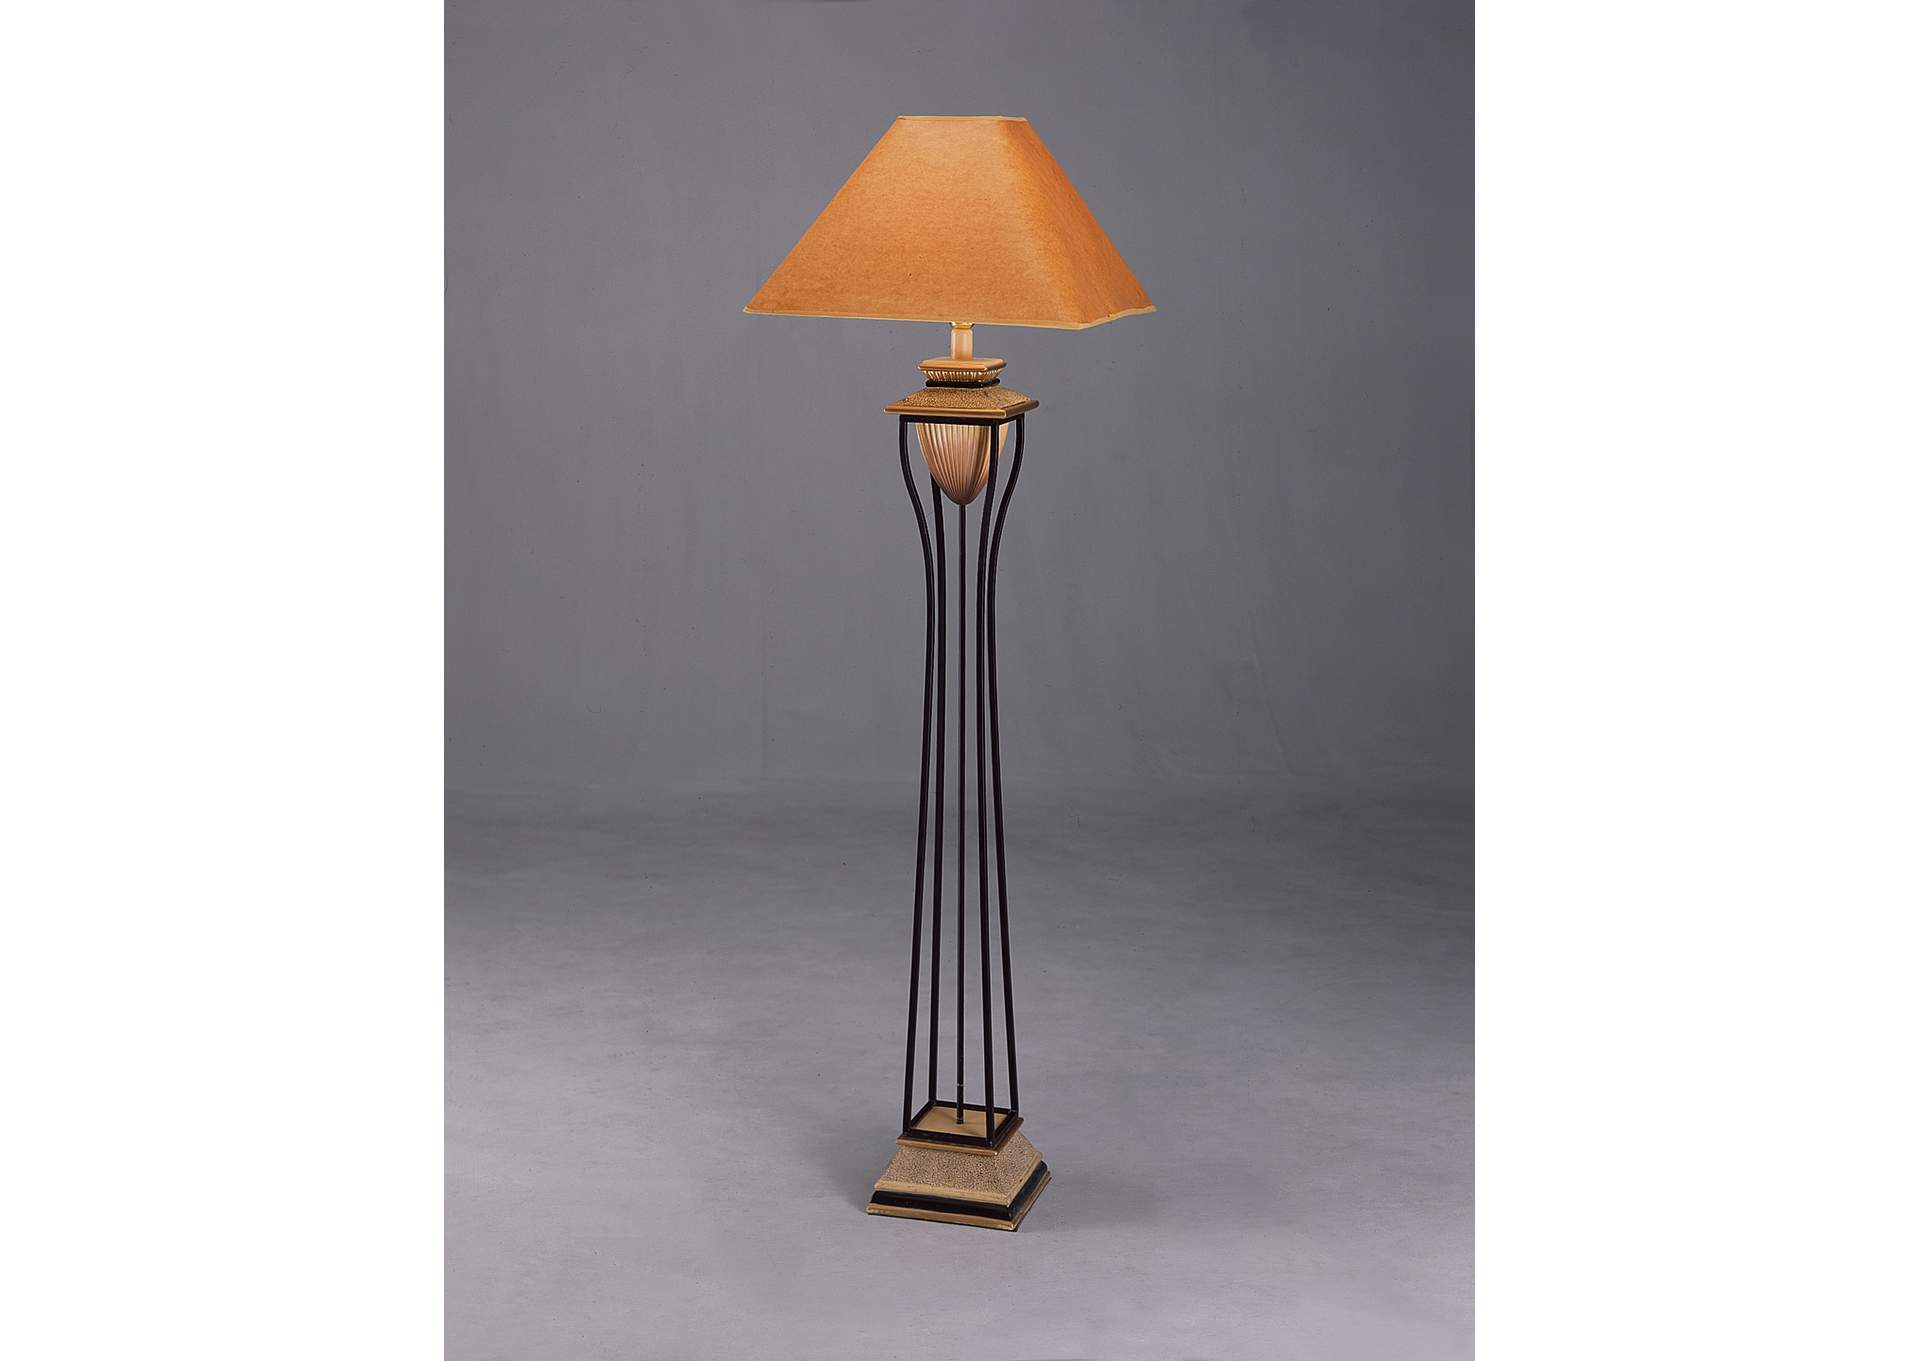 Chandelier Floor Lamp 62.5 H,Crown Mark